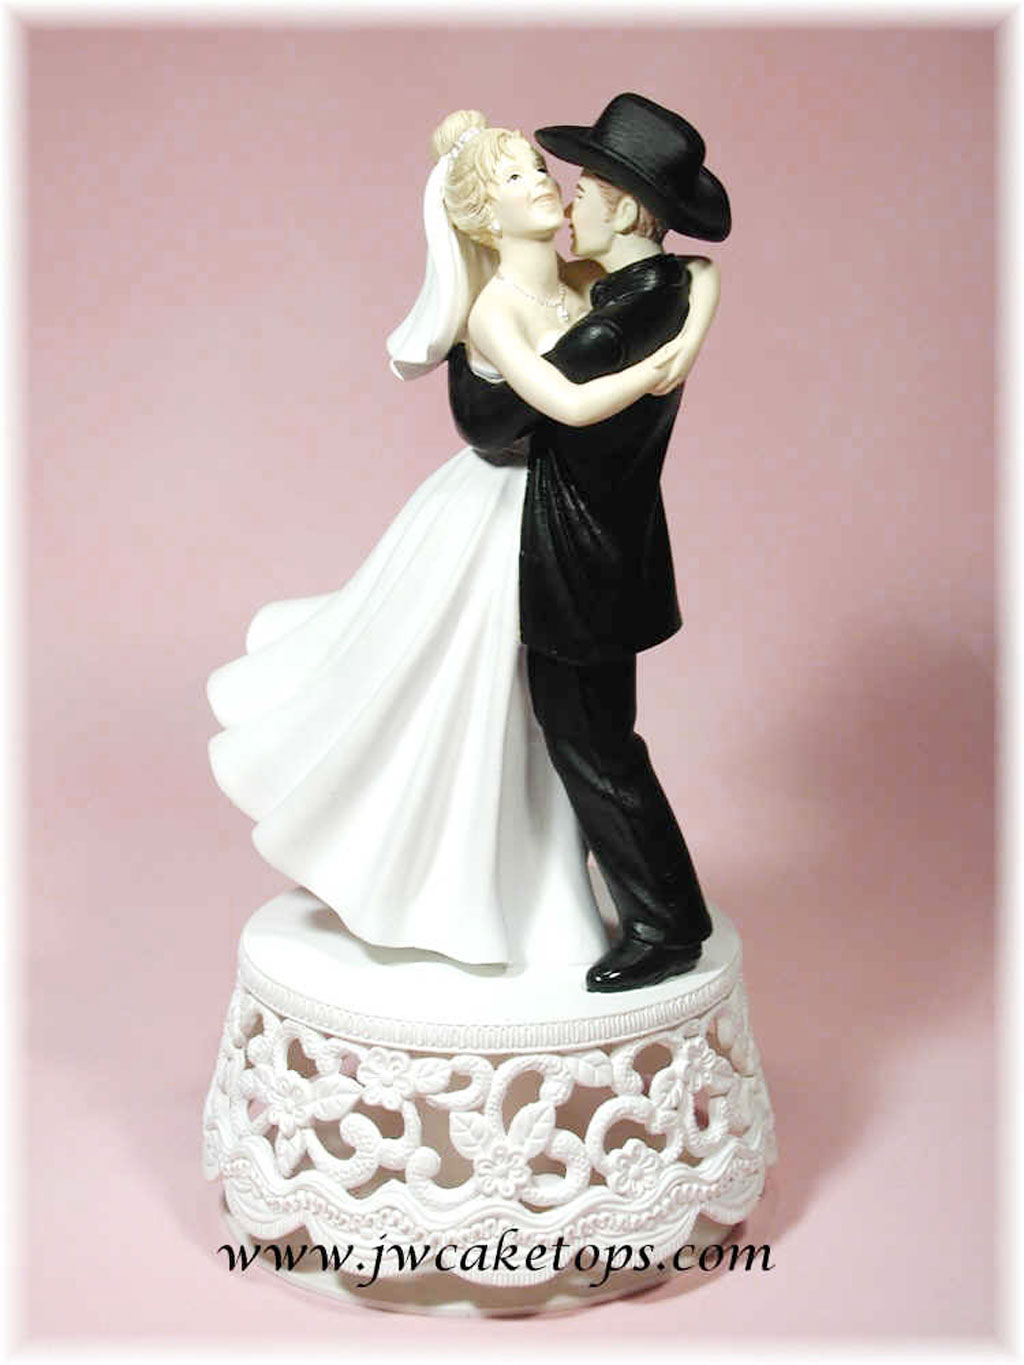 western wedding cake toppers cheap wedding cake cake ideas by. Black Bedroom Furniture Sets. Home Design Ideas